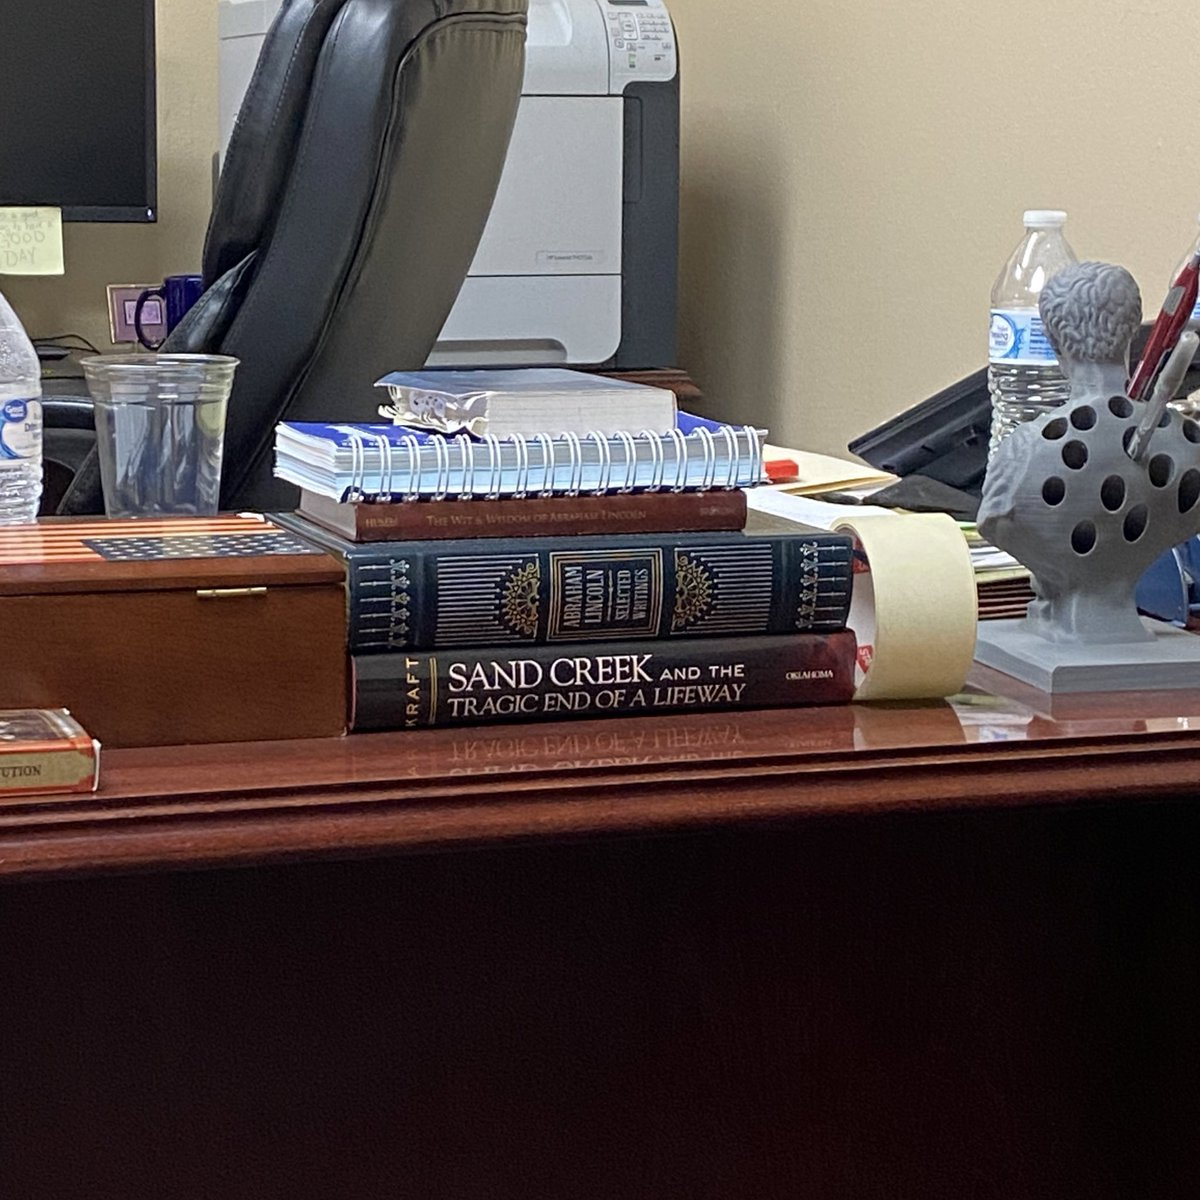 You know a judge is righteous when he's got a book about the Sand Creek massacre on his desk in his chambers. It was one of the absolute worst massacres of Native Americans in US history. Few people know about it because they don't put it history books in schools https://t.co/srRto7GmGK